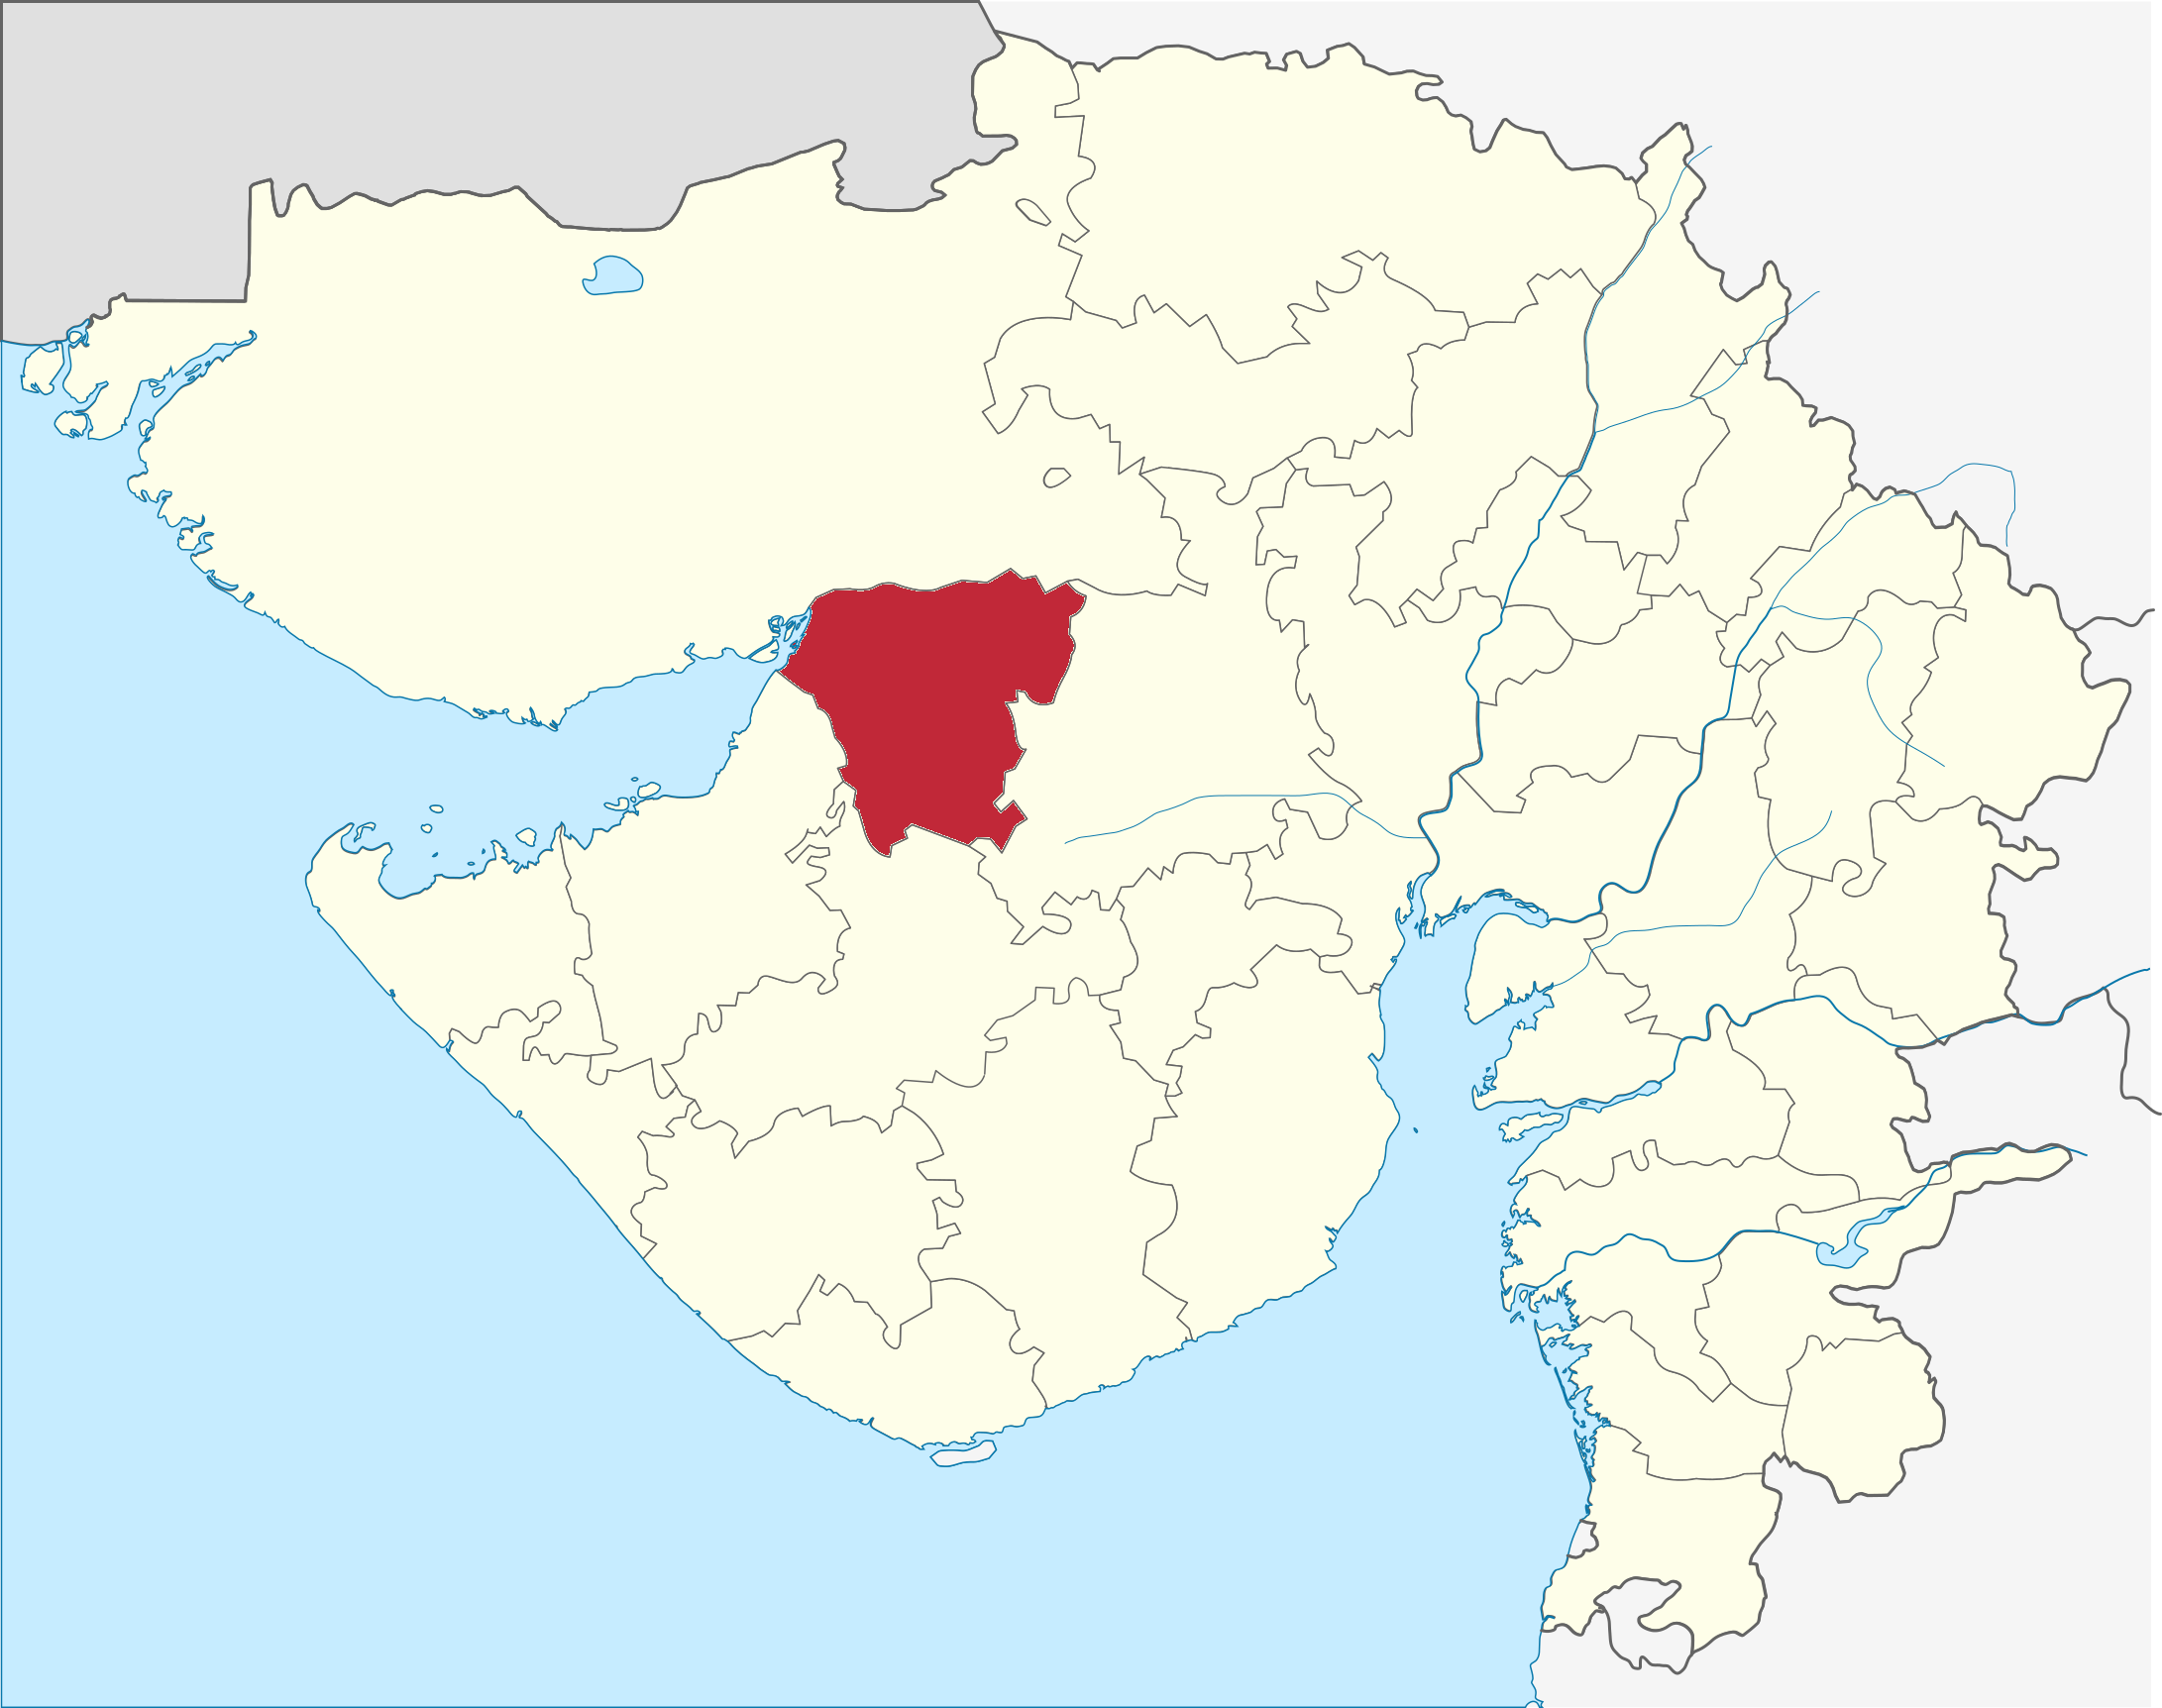 FileGujarat Morbi District Locator Mappng Wikimedia Commons - Morvi map